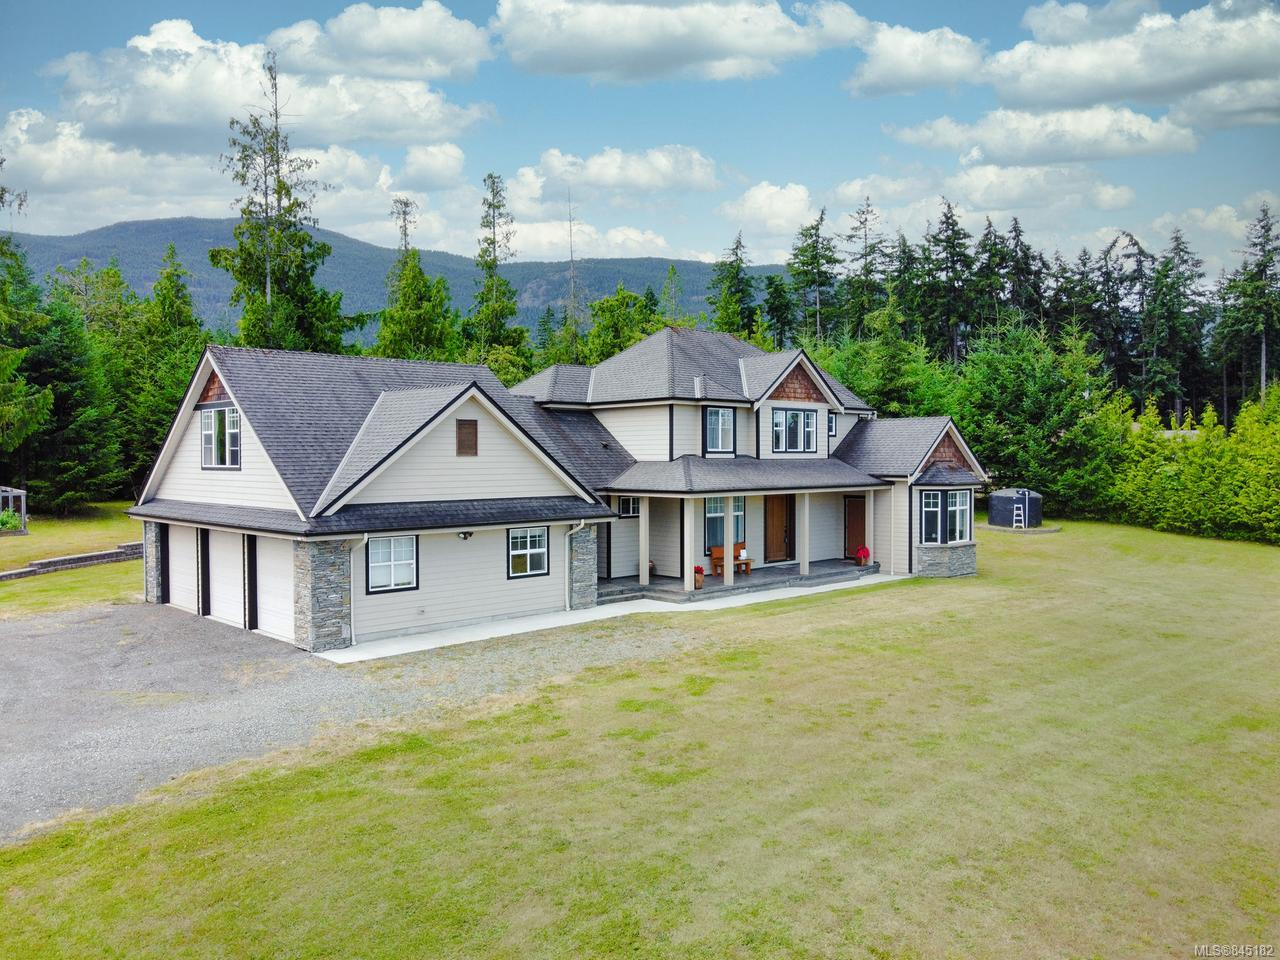 FEATURED LISTING: 2755 Shady Mile Way NANAIMO